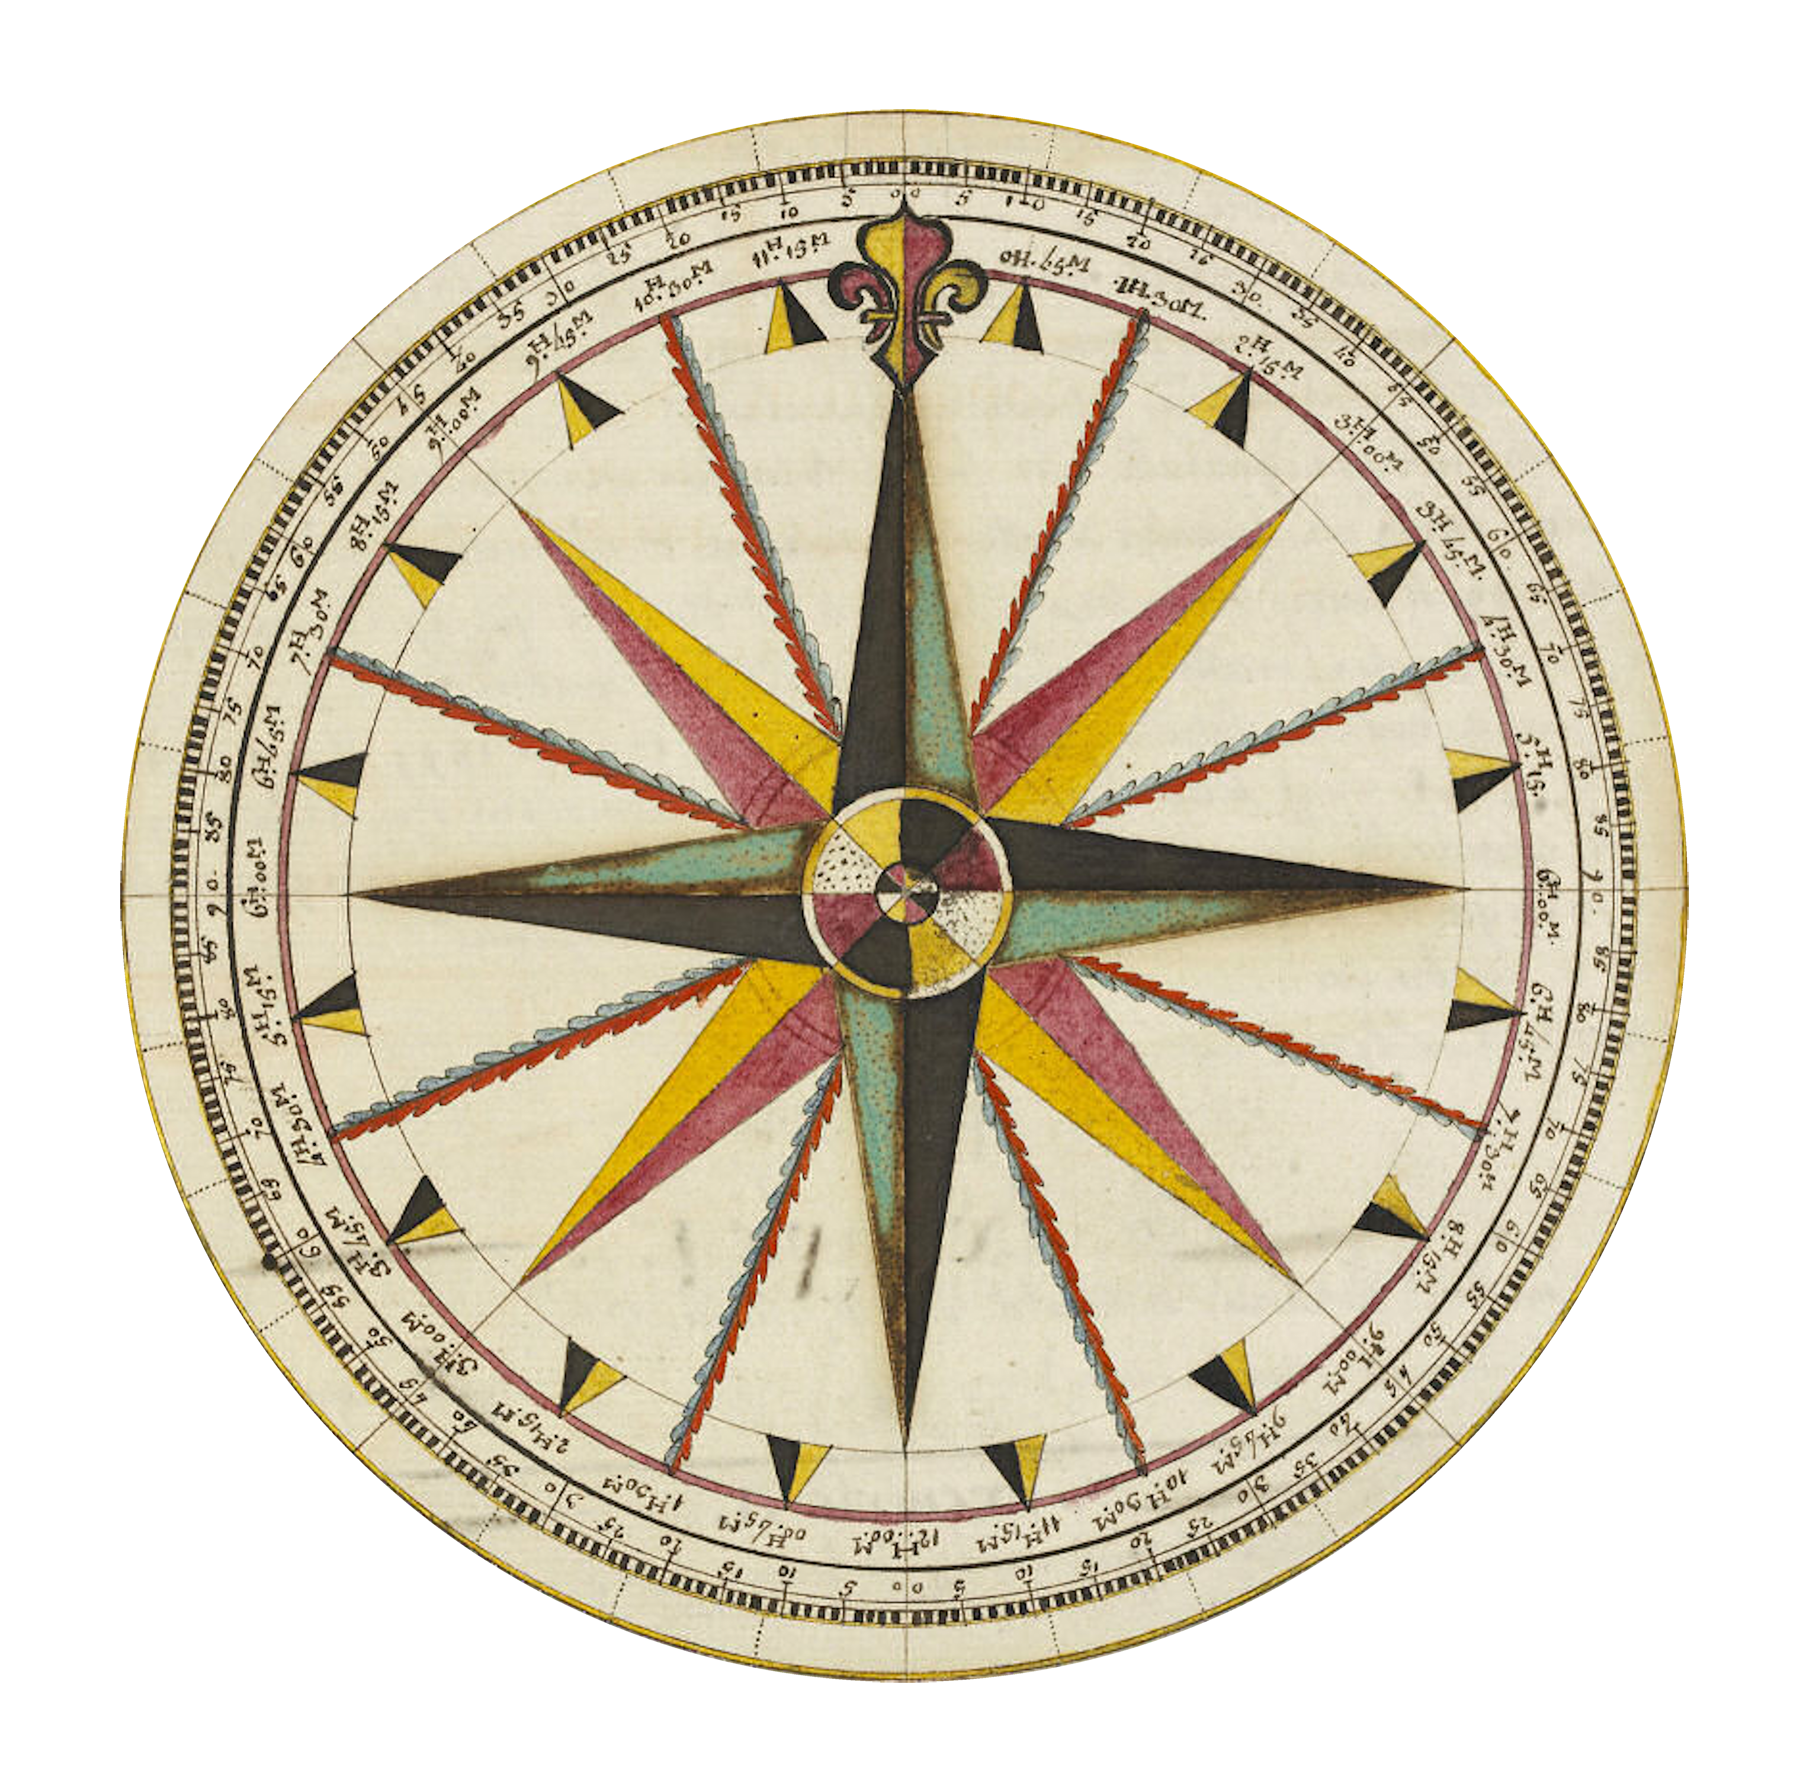 Celestial drawing compass. Rose garden roses navigation